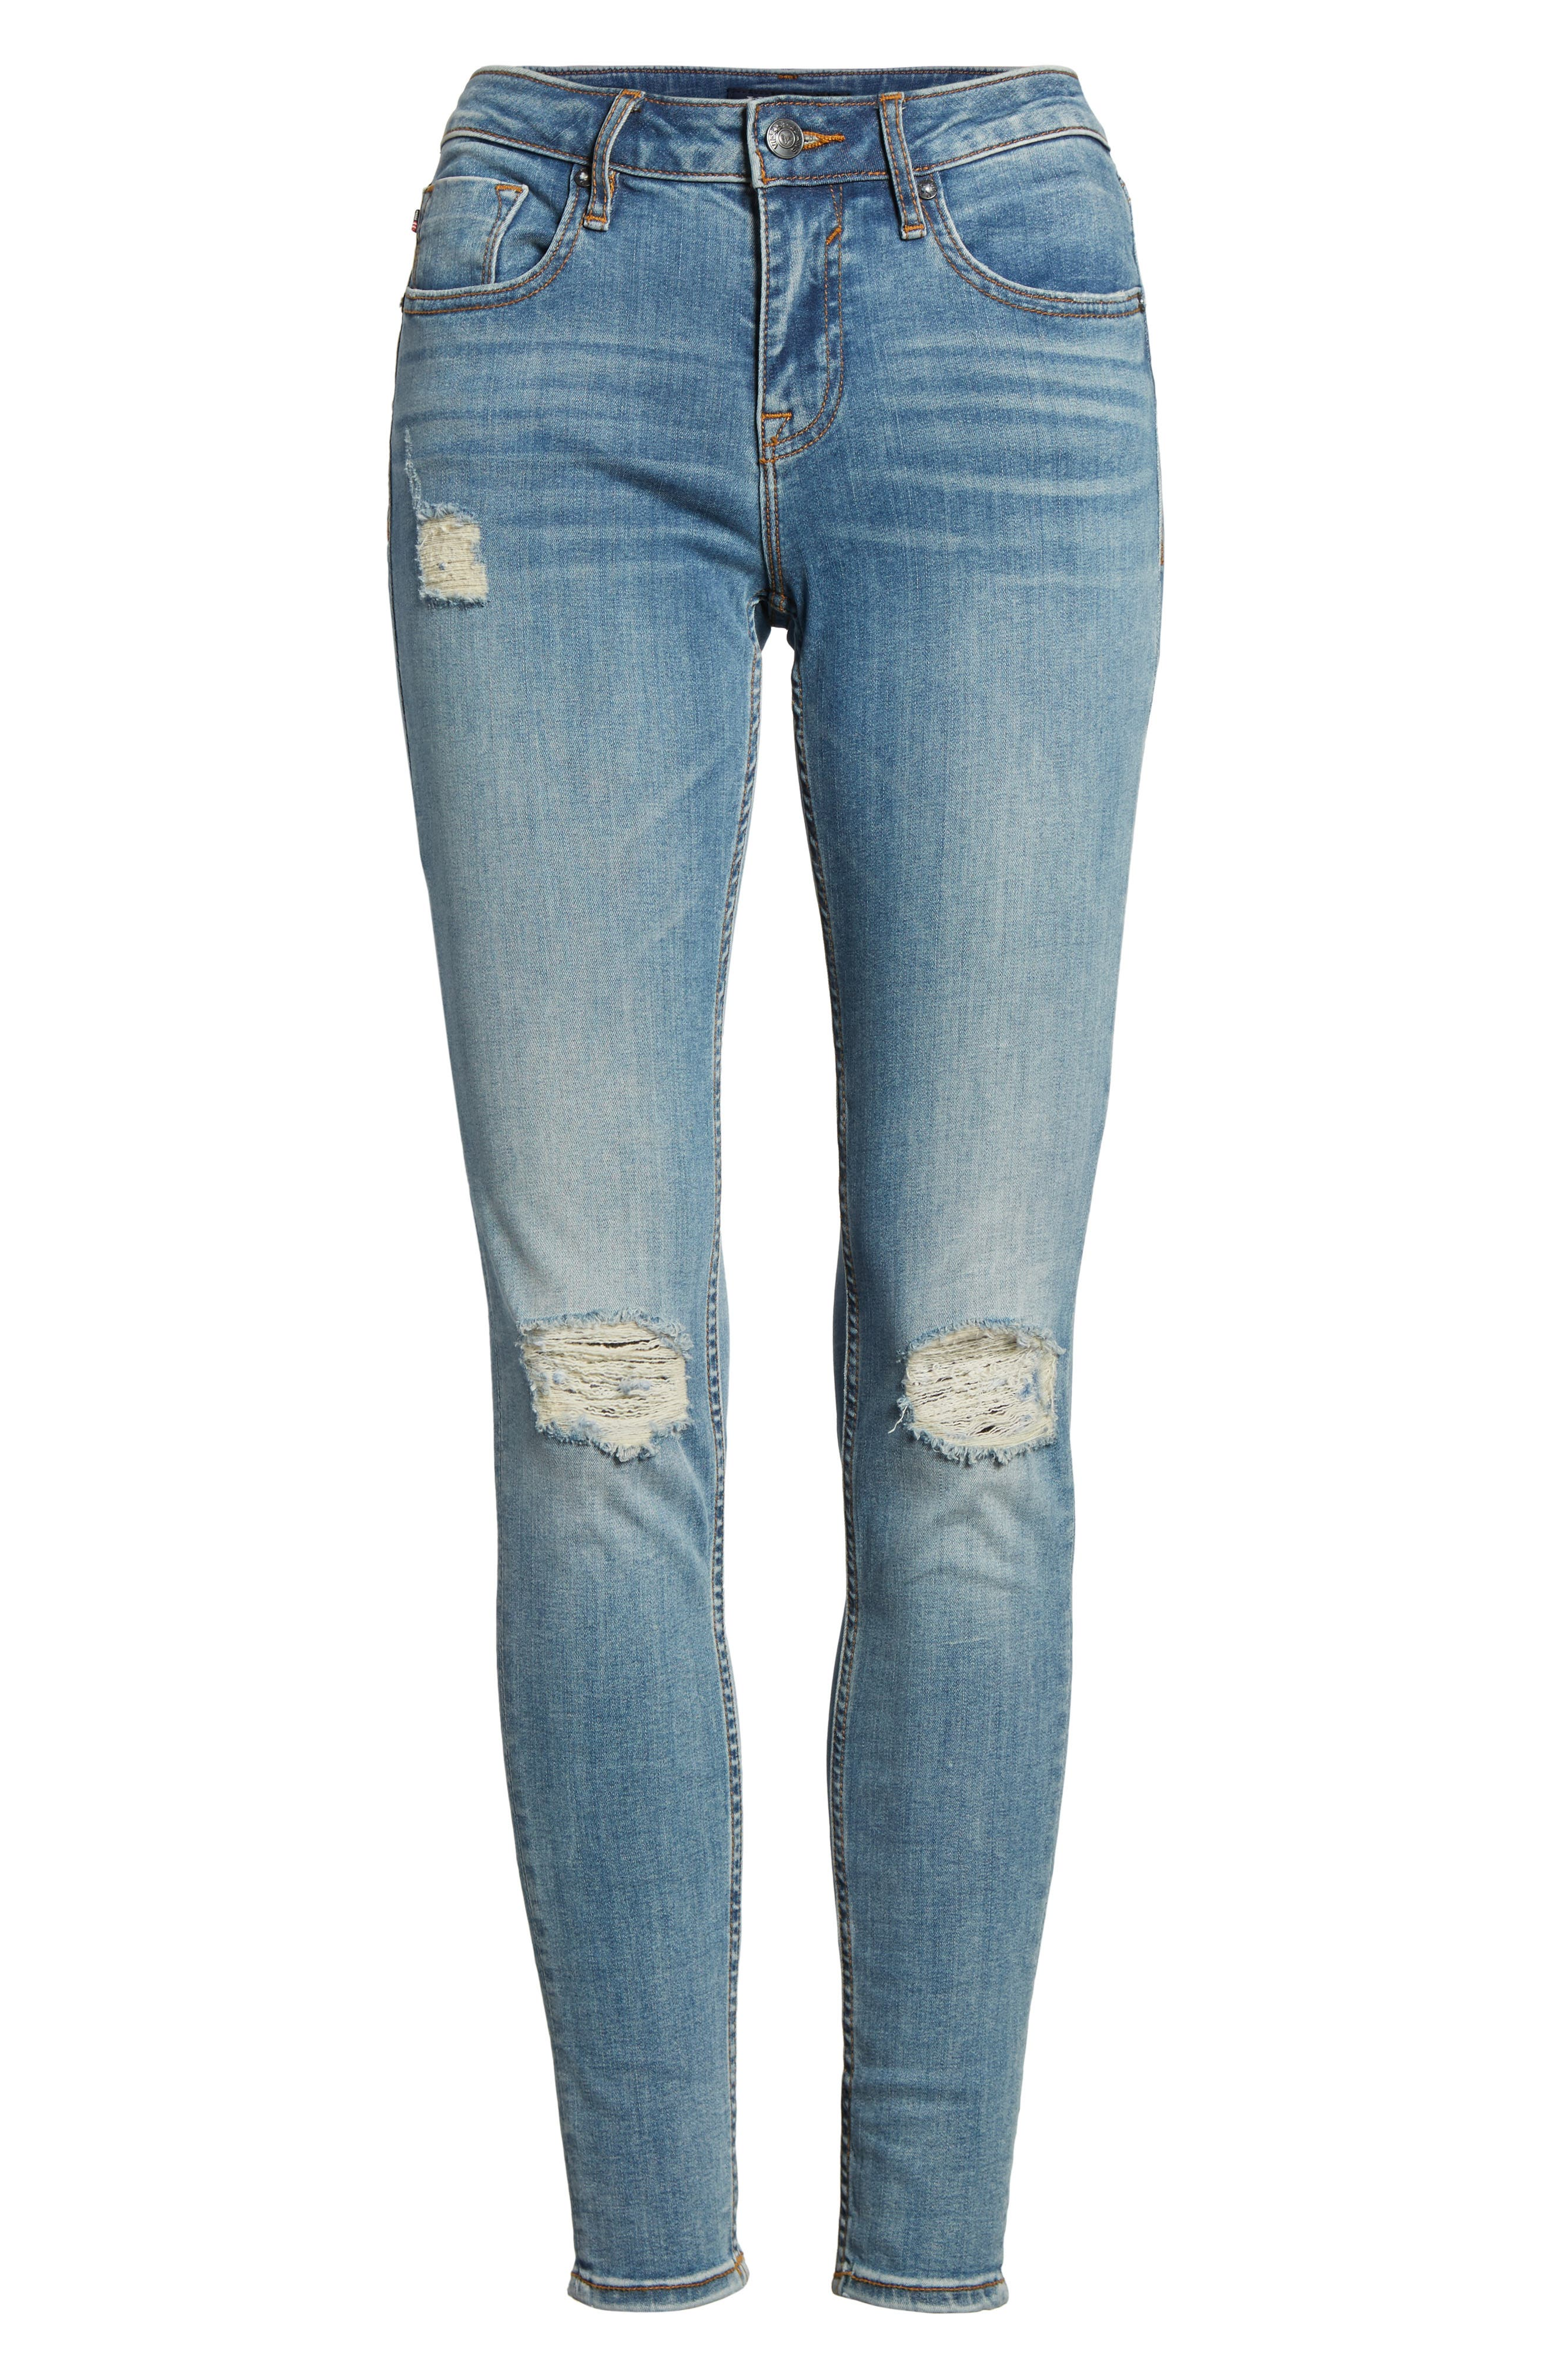 Edie Distressed Skinny Jeans,                             Alternate thumbnail 6, color,                             Light Wash